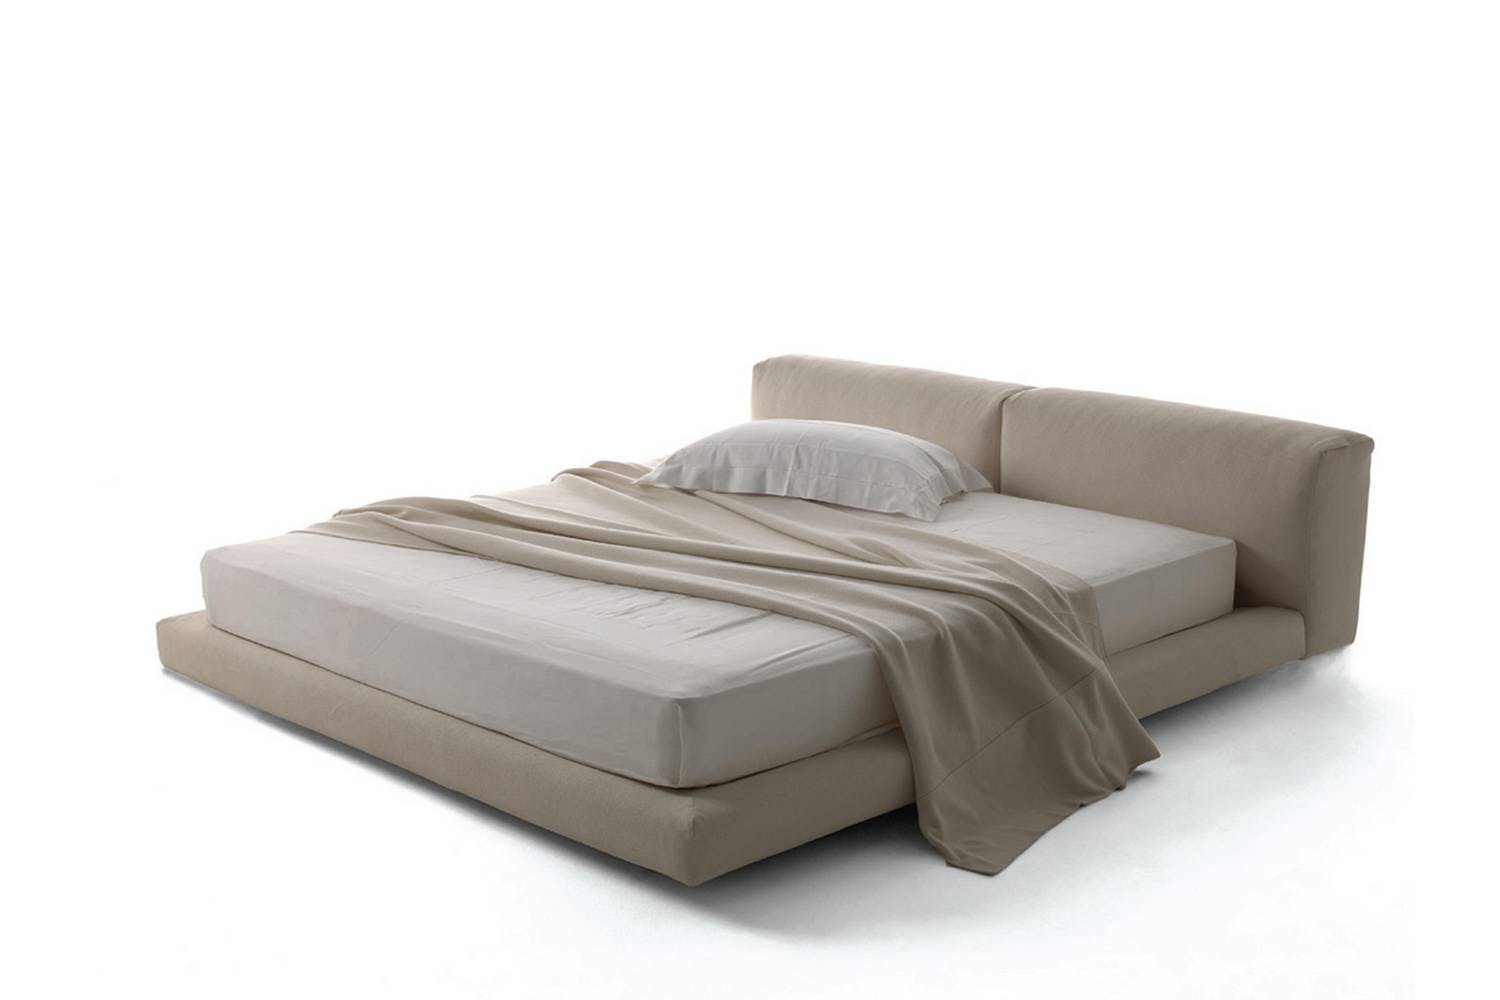 Softwall Bed by Piero Lissoni for Living Divani | Space Furniture